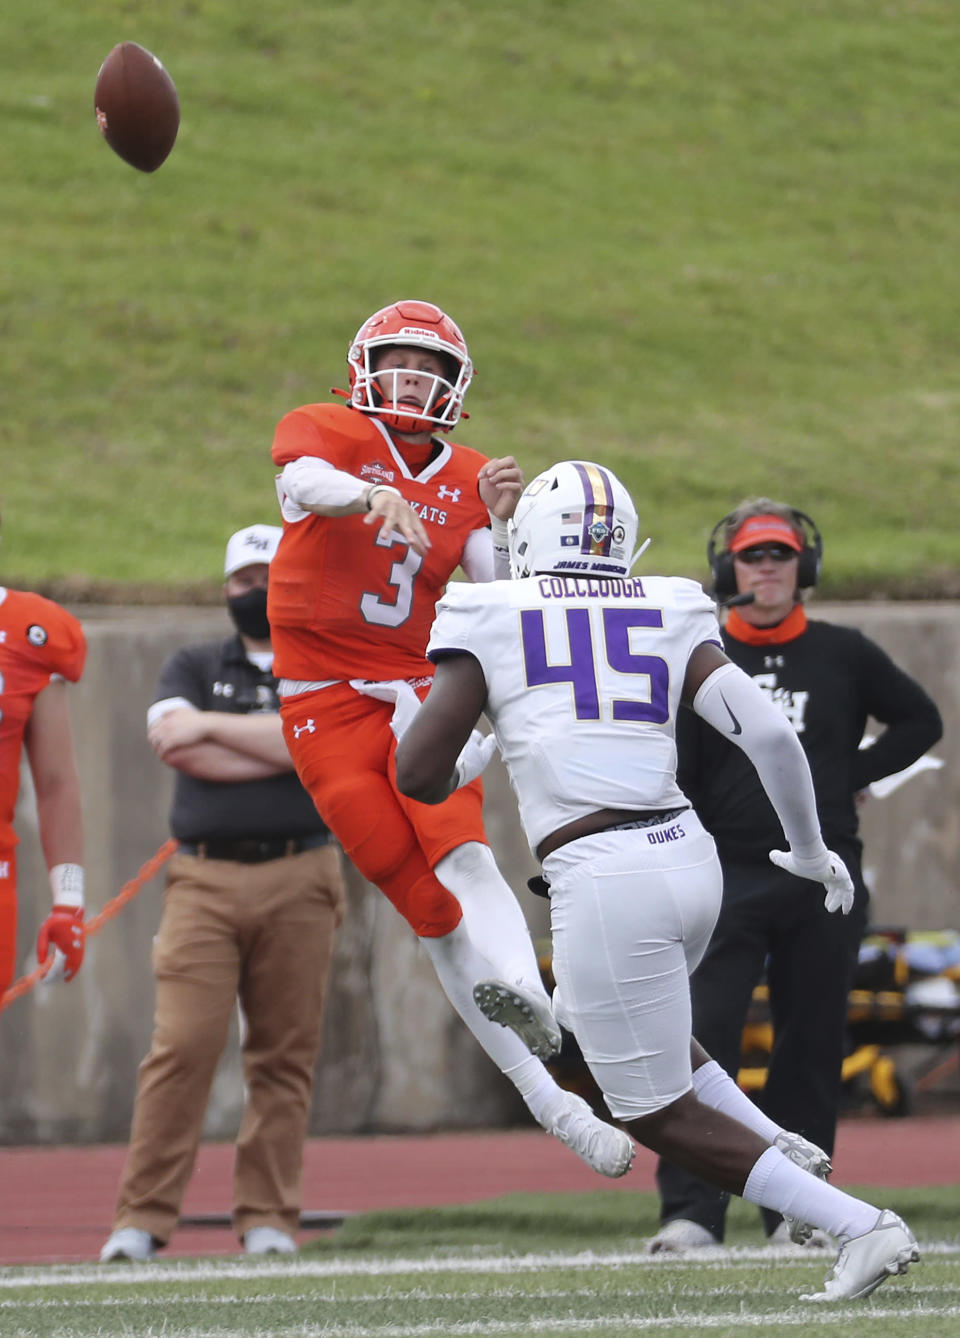 Sam Houston State quarterback Eric Schmid (3) gets off a pass over James Madison defensive lineman Antonio Colclough (45) during the third quarter of a semifinal game in the NCAA college football FCS playoffs, Saturday, May 8, 2021, in Huntsville, Texas. Sam Houston came from behind to edge James Madison 38-35, for a berth in the FCS national championship game. (Brett Coomer/Houston Chronicle via AP)